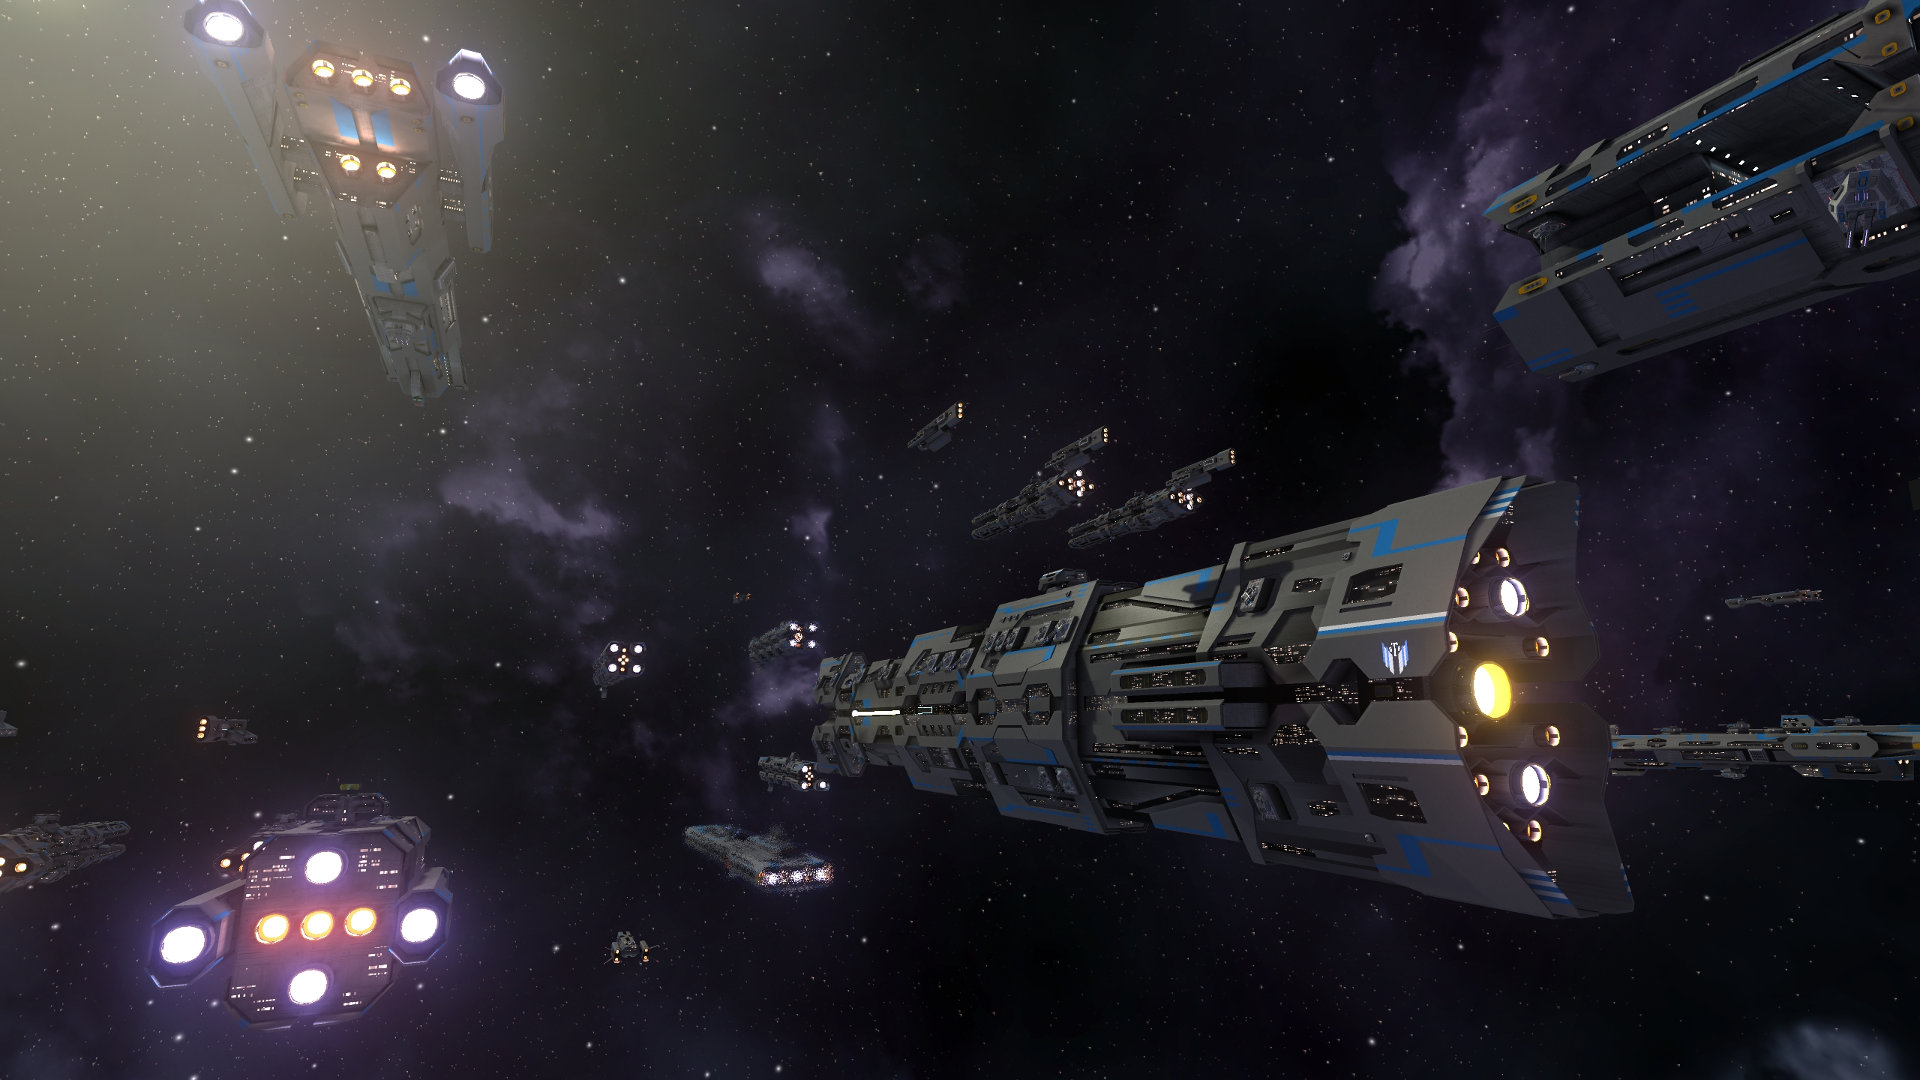 Two large ships flying next to each other